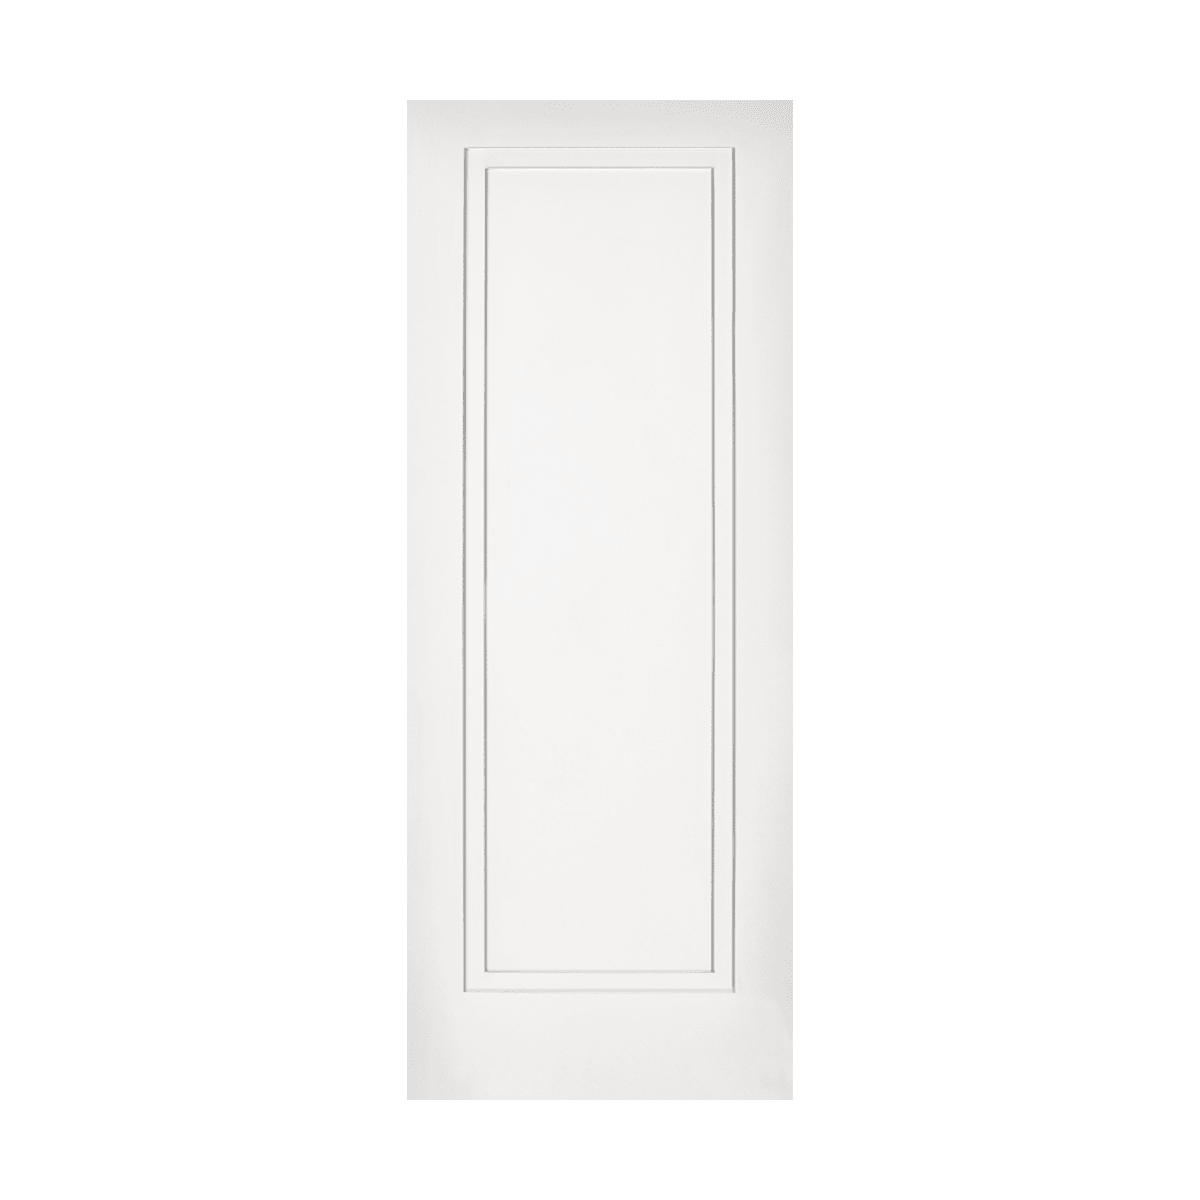 Trimlite Bifold door Door   Item# 10087